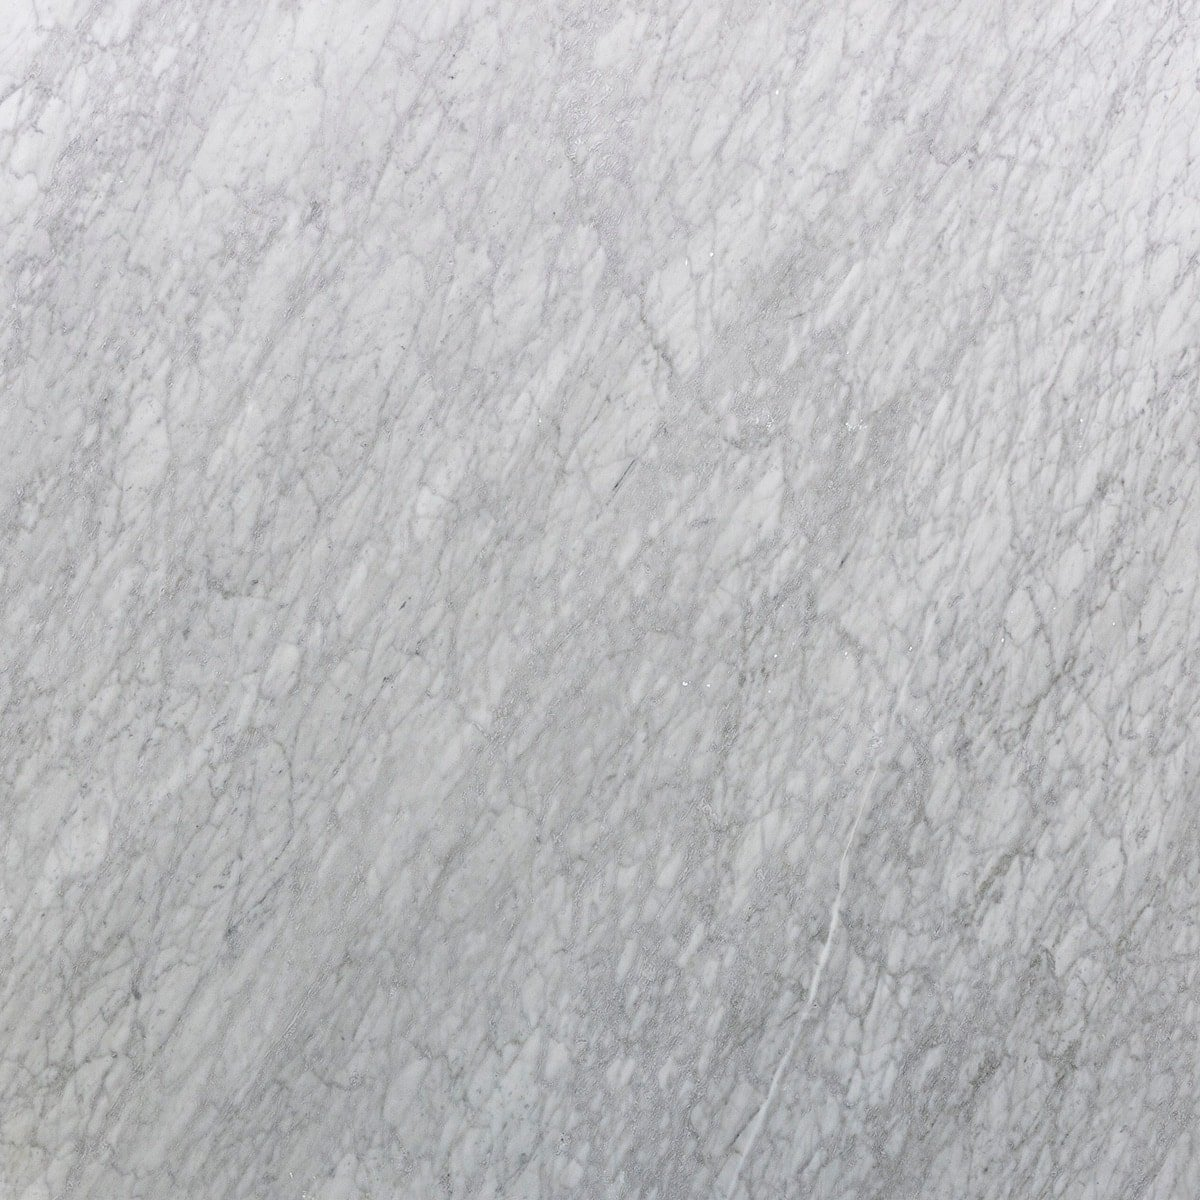 White Carrara Honed Marble Slab Random 1 1 4